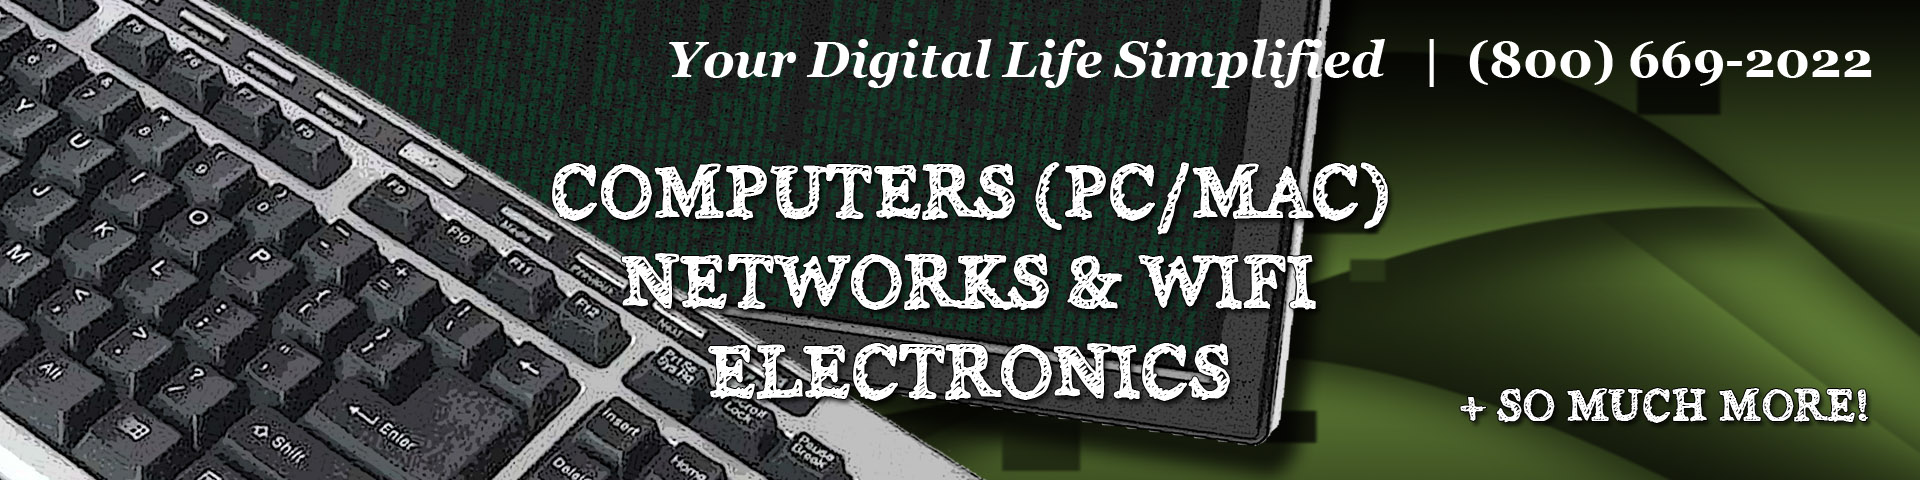 TeCHS | Your digital life simplified